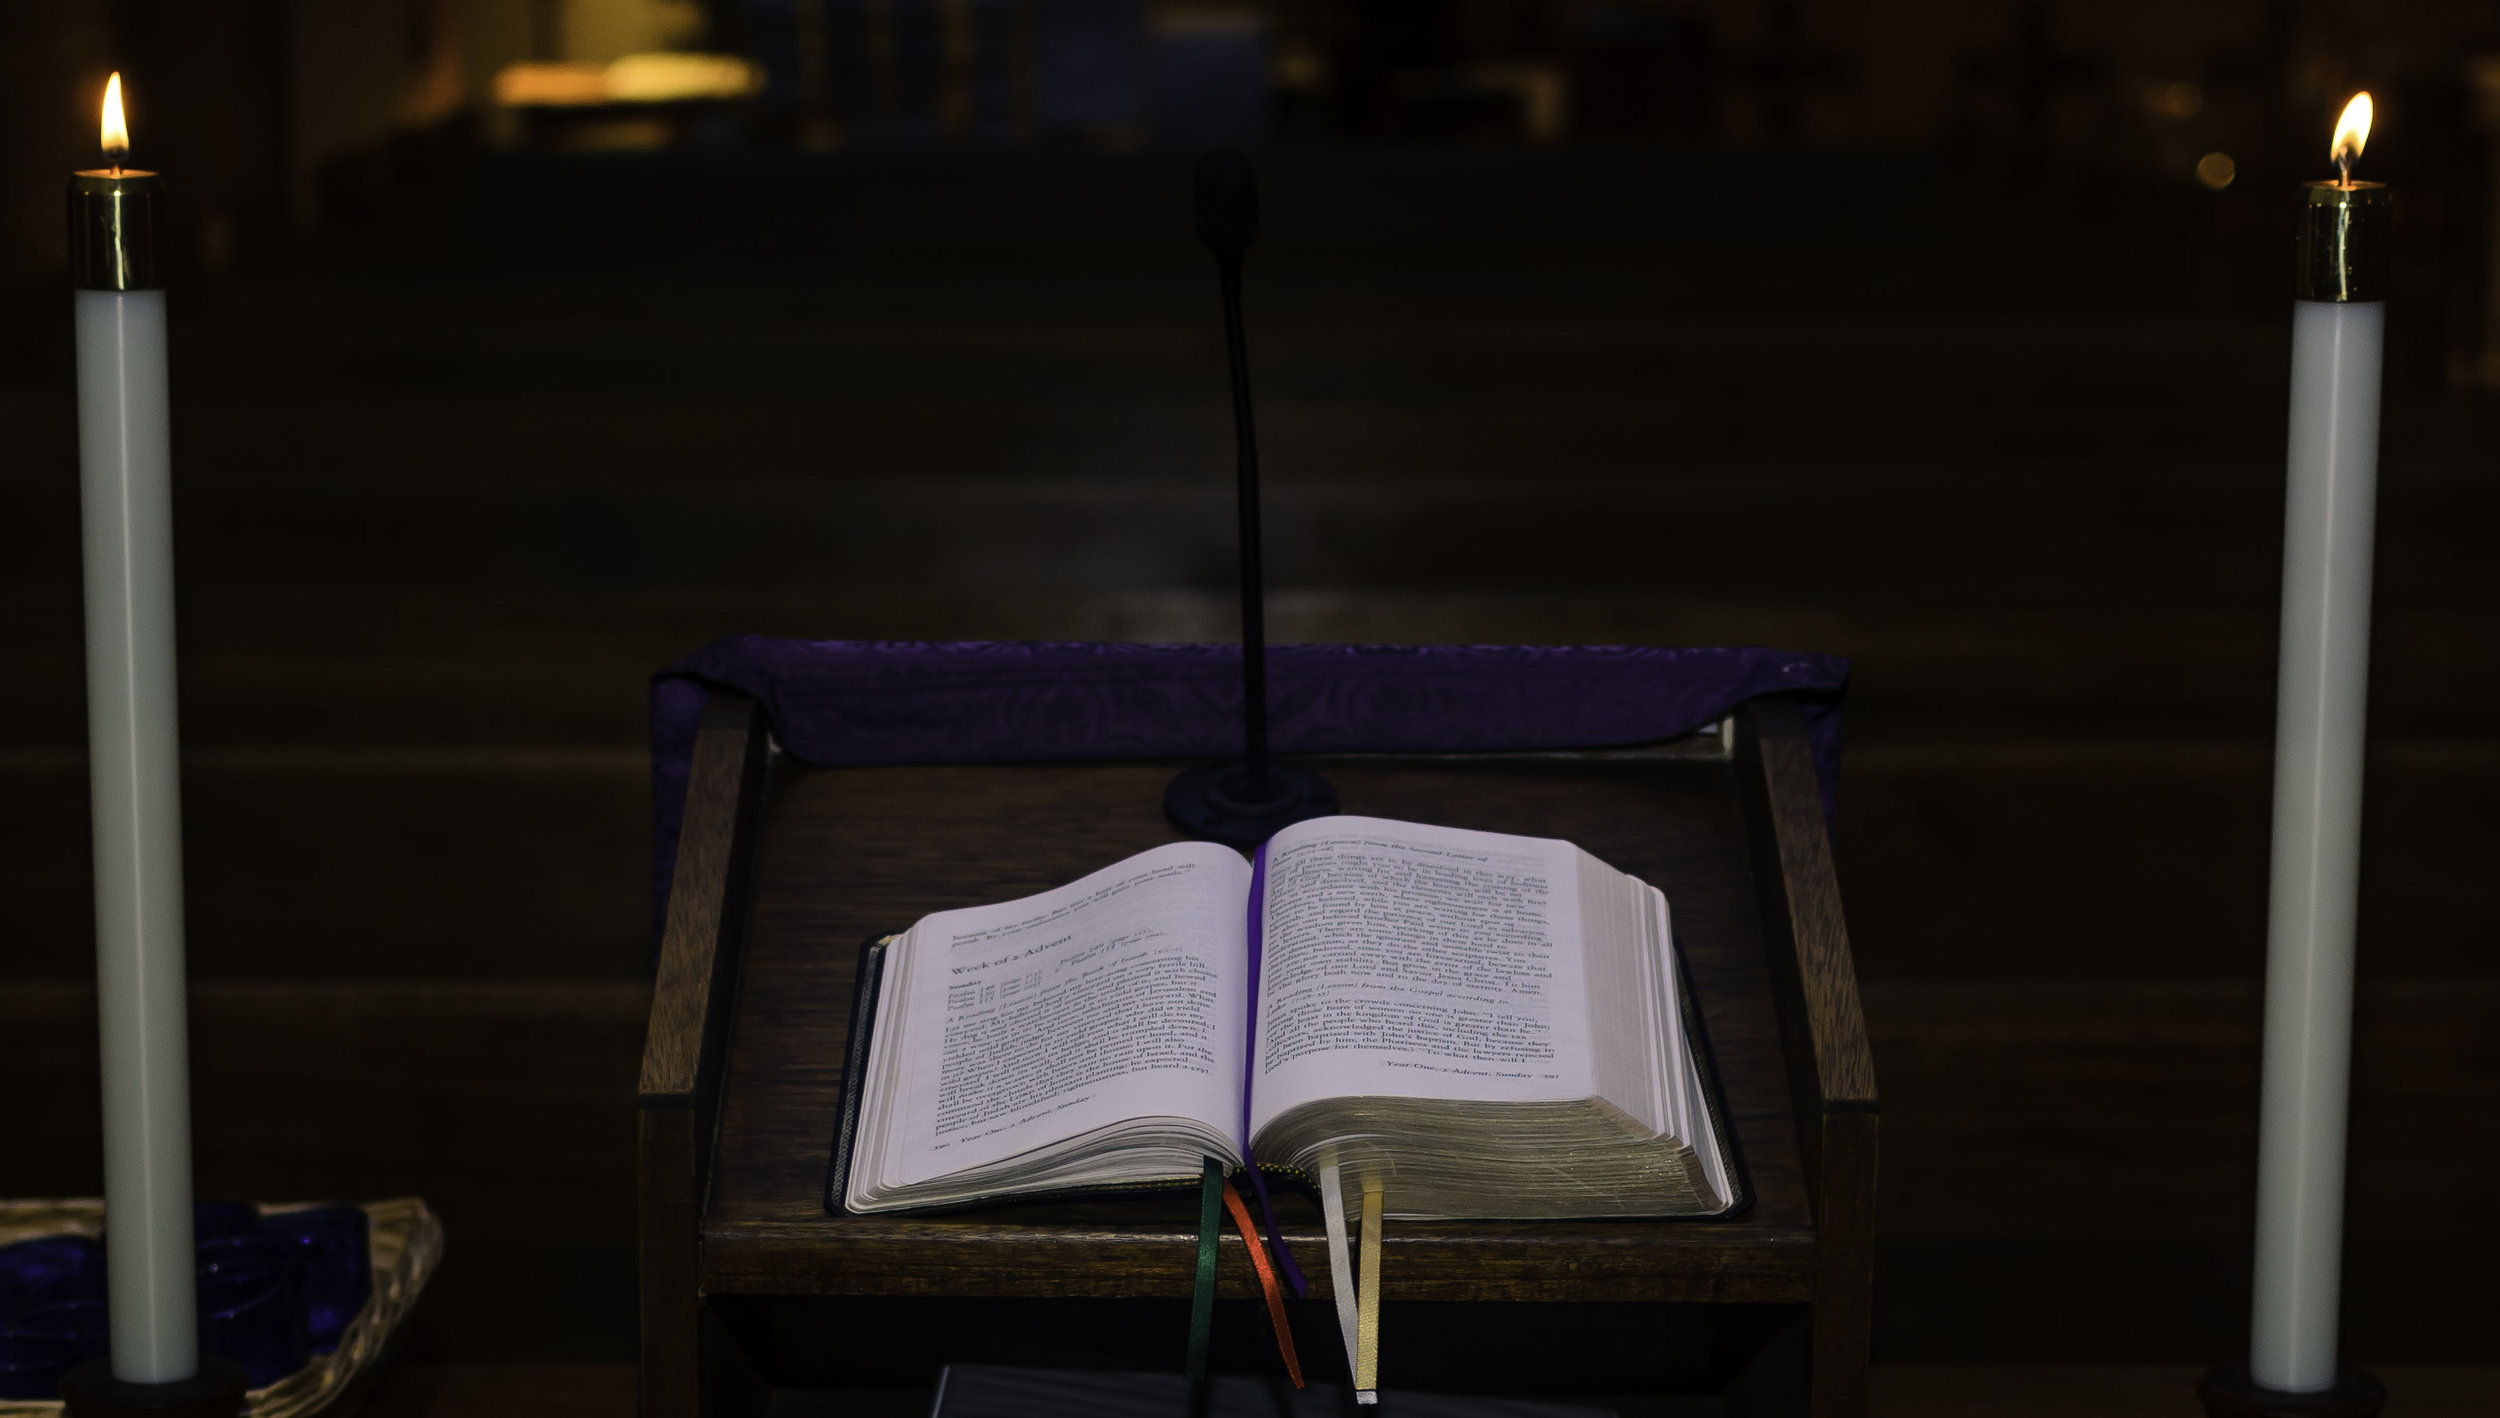 The Daily Office Book of Readings at Evensong